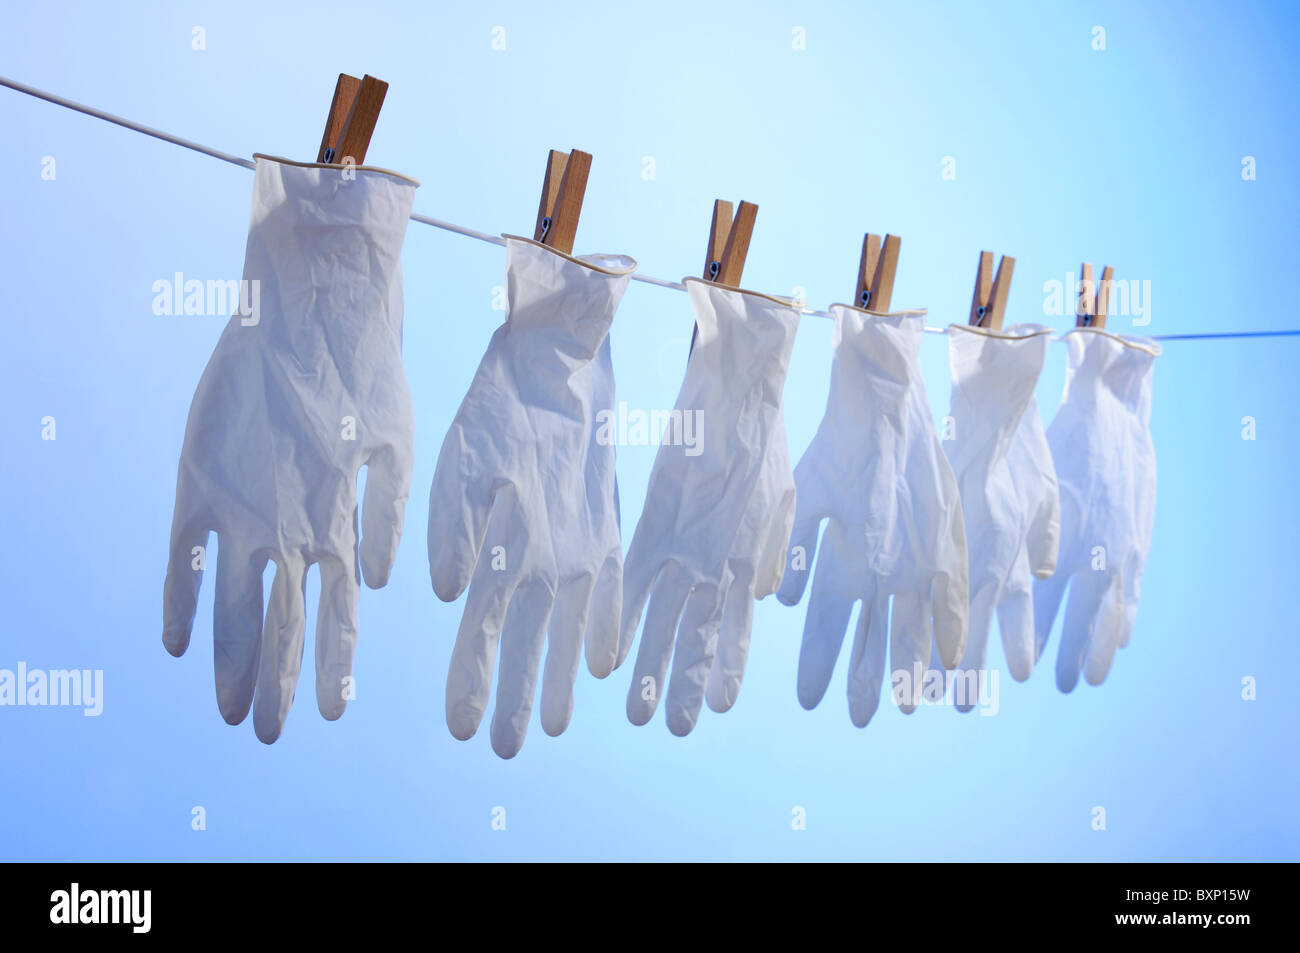 Latex gloves pegged on a washing line - Stock Image